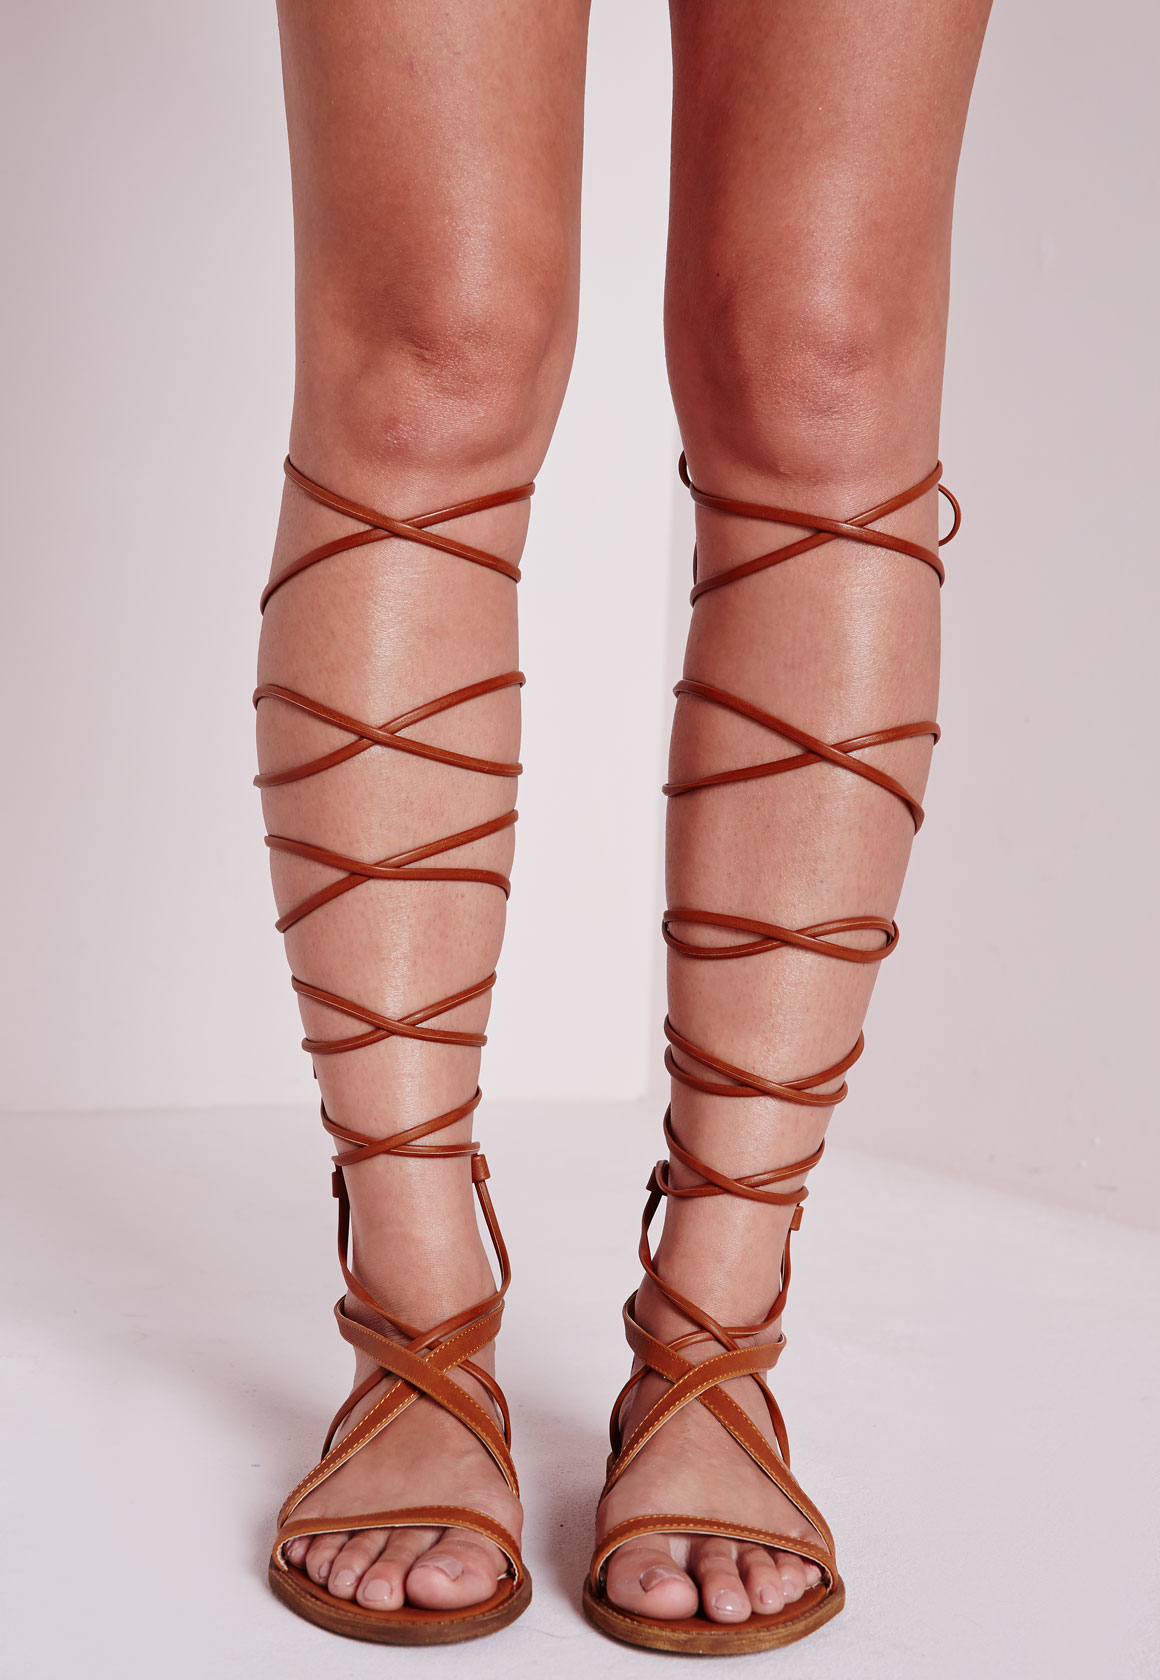 Lyst - Missguided Flat Lace Up Gladiator Sandals Tan in Brown